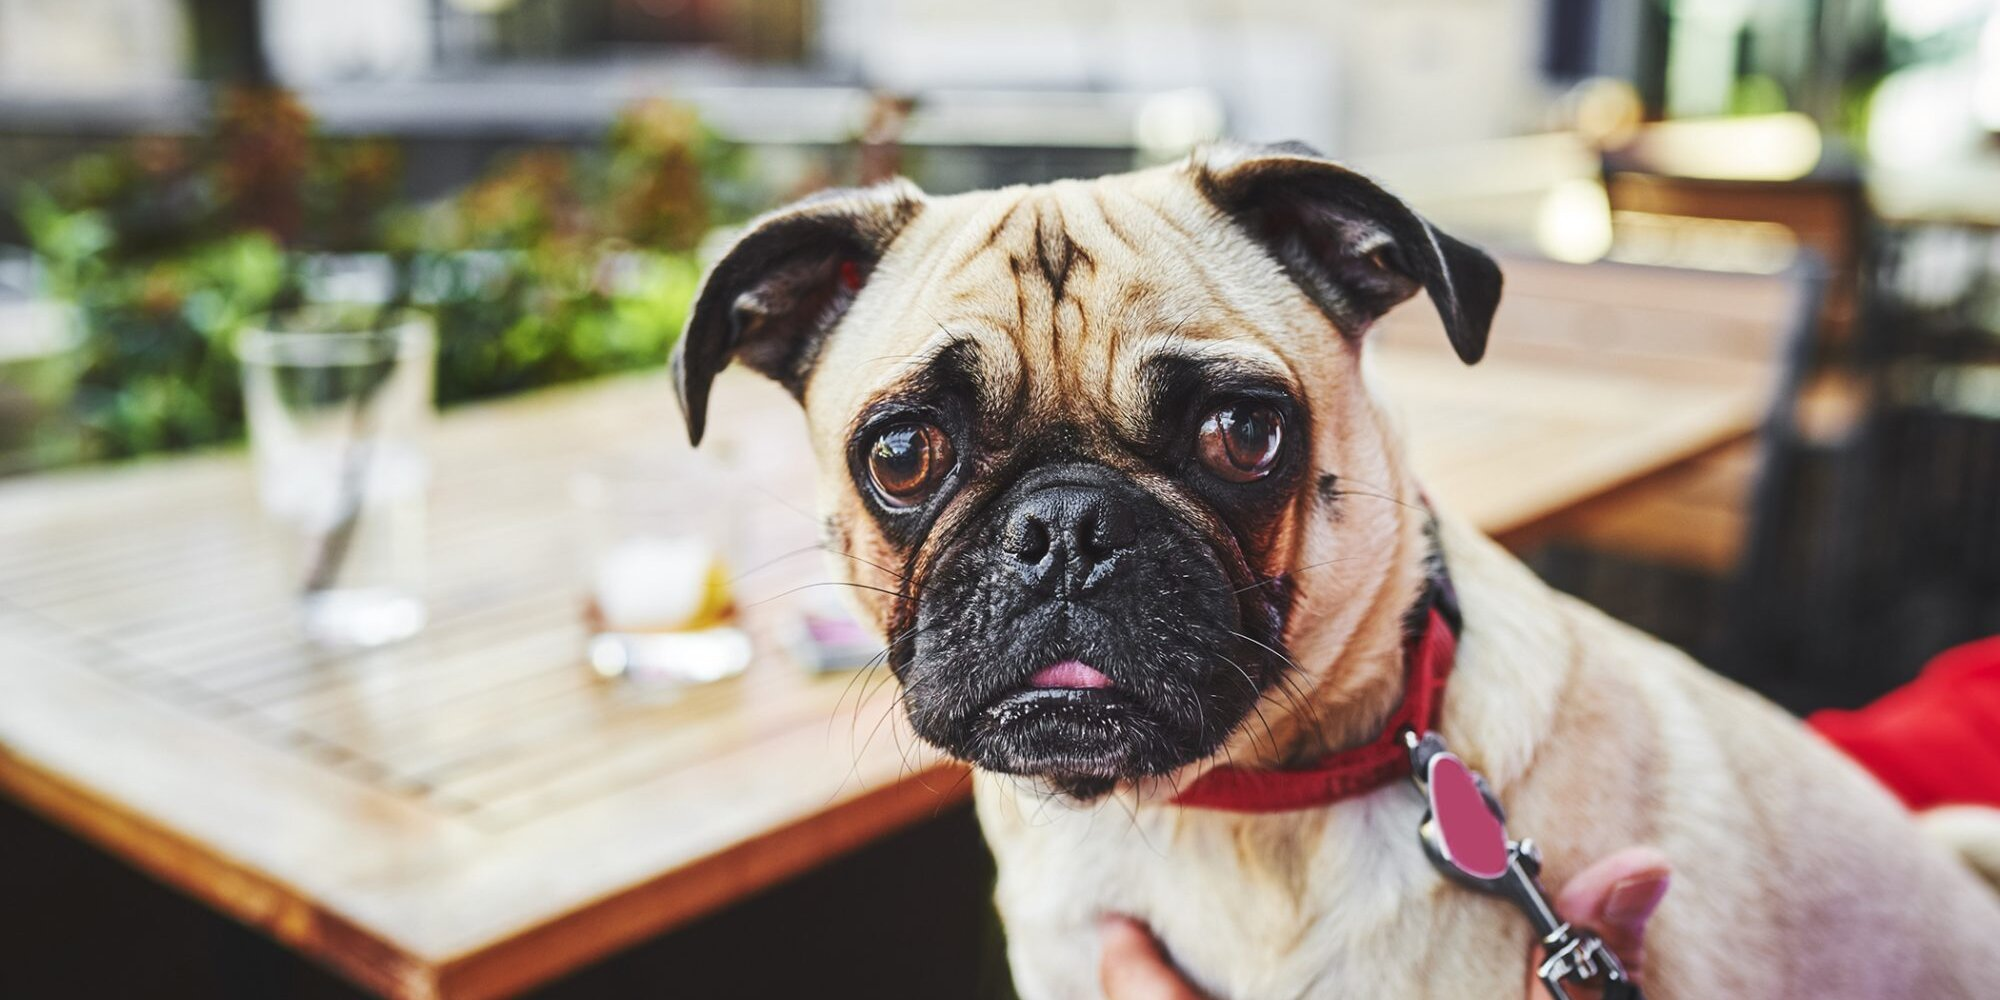 The Ultimate Guide to the Best Dog-Friendly Bars in the U.S.